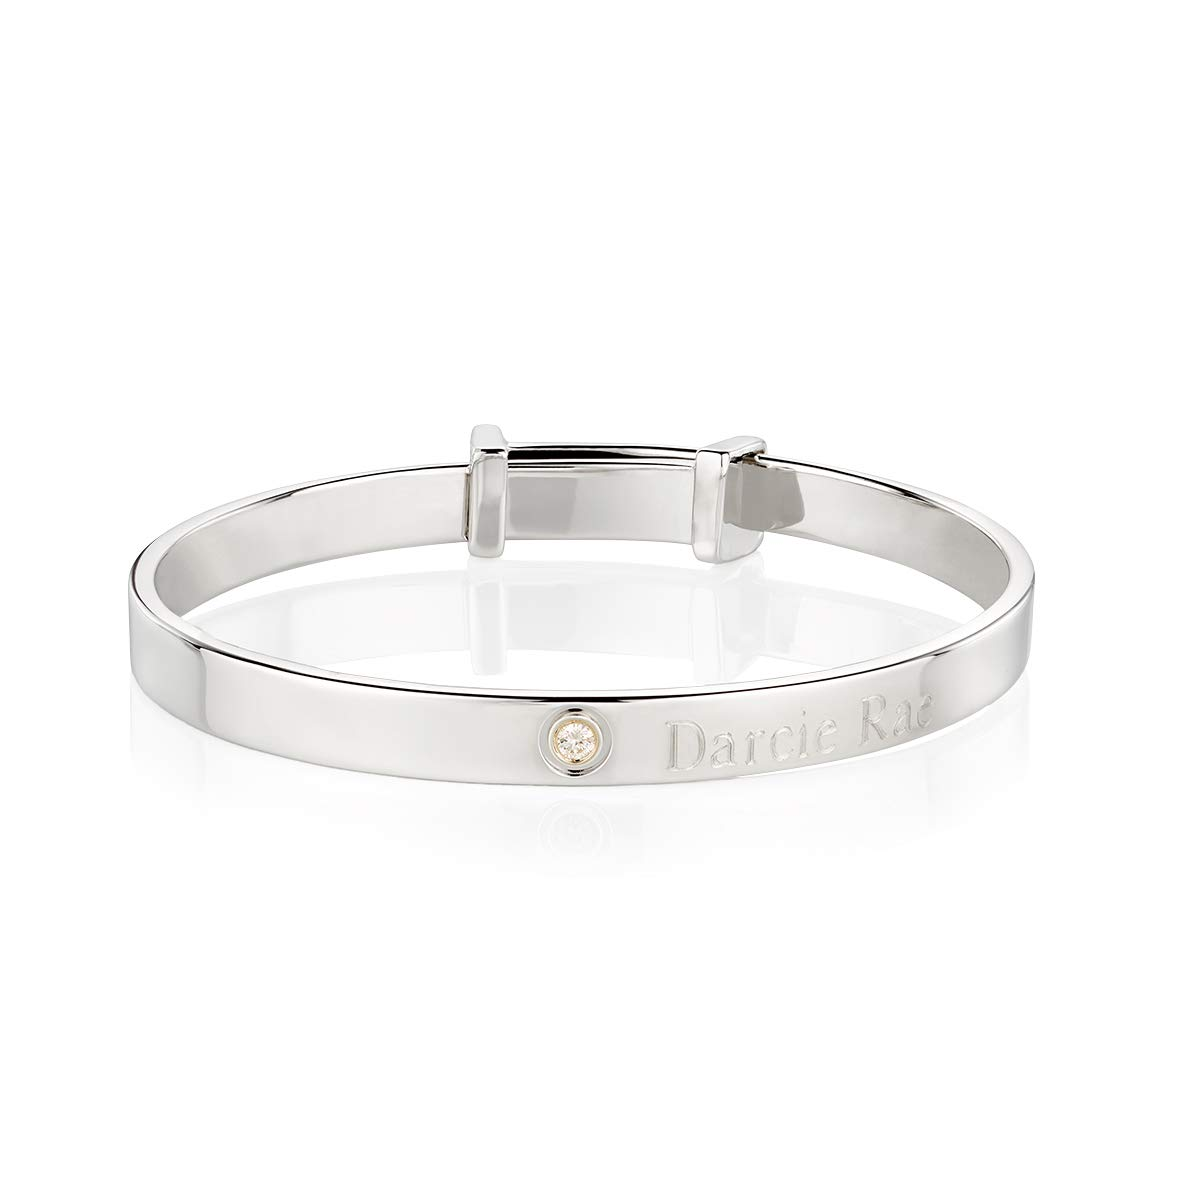 Molly B London | Personalized 925 Sterling Silver Baby's April Diamond Birthstone Baptism Bangle by Molly B London (Image #1)